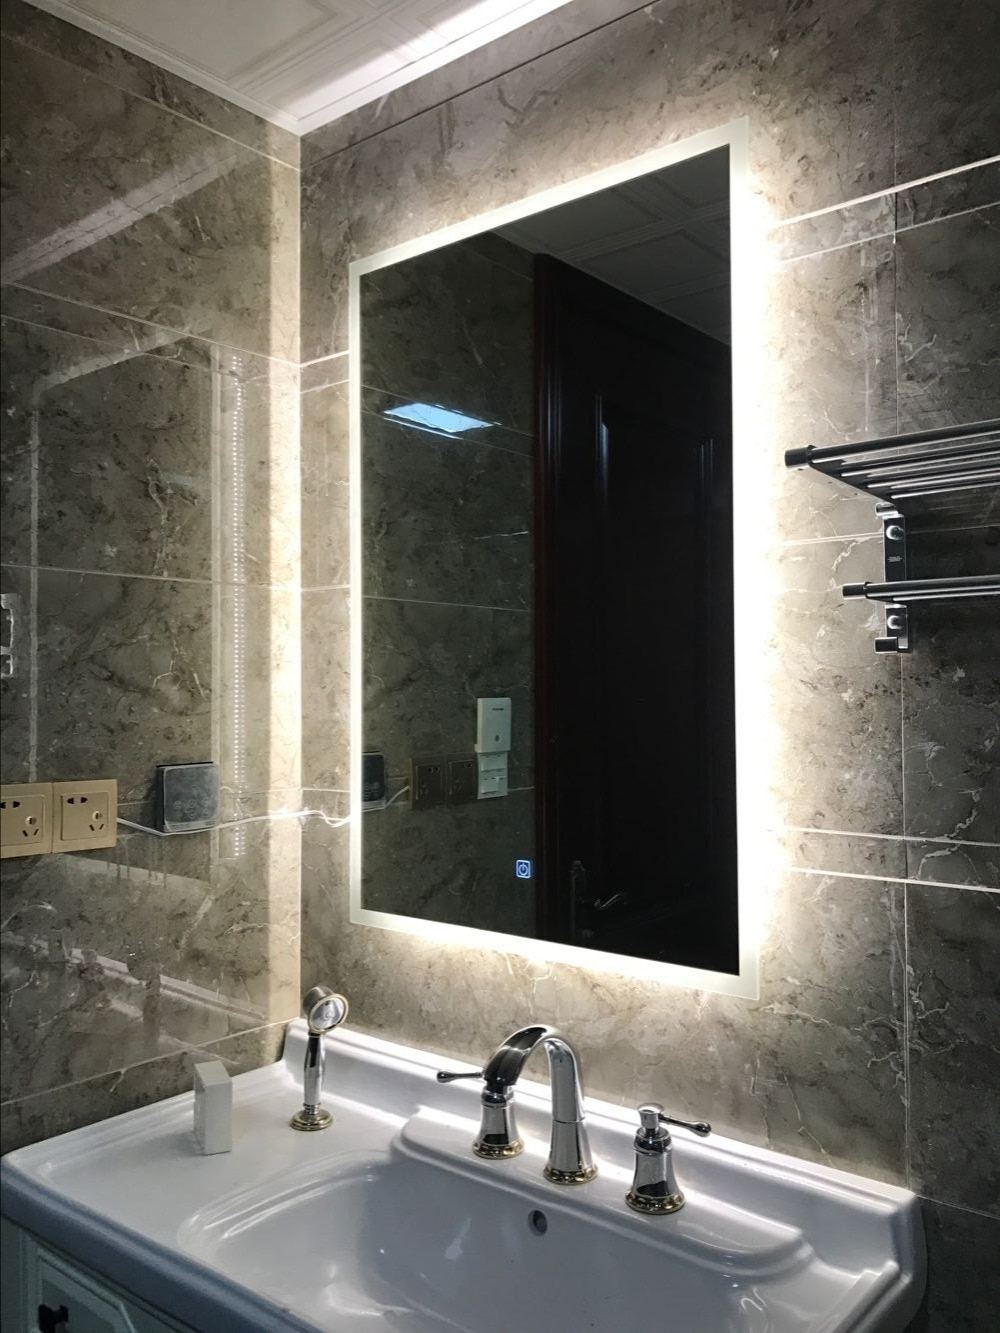 [%us $180.0 10% Off|box Diffusers Led Backlit Bathroom Mirror Vanity Square Wall Mount Bathroom Finger Touch Light Mirror Bath Mirrors In Bath Mirrors Intended For Favorite Backlit Bathroom Wall Mirrors|backlit Bathroom Wall Mirrors Throughout Famous Us $180.0 10% Off|box Diffusers Led Backlit Bathroom Mirror Vanity Square Wall Mount Bathroom Finger Touch Light Mirror Bath Mirrors In Bath Mirrors|best And Newest Backlit Bathroom Wall Mirrors With Regard To Us $180.0 10% Off|box Diffusers Led Backlit Bathroom Mirror Vanity Square Wall Mount Bathroom Finger Touch Light Mirror Bath Mirrors In Bath Mirrors|most Up To Date Us $ (View 3 of 20)